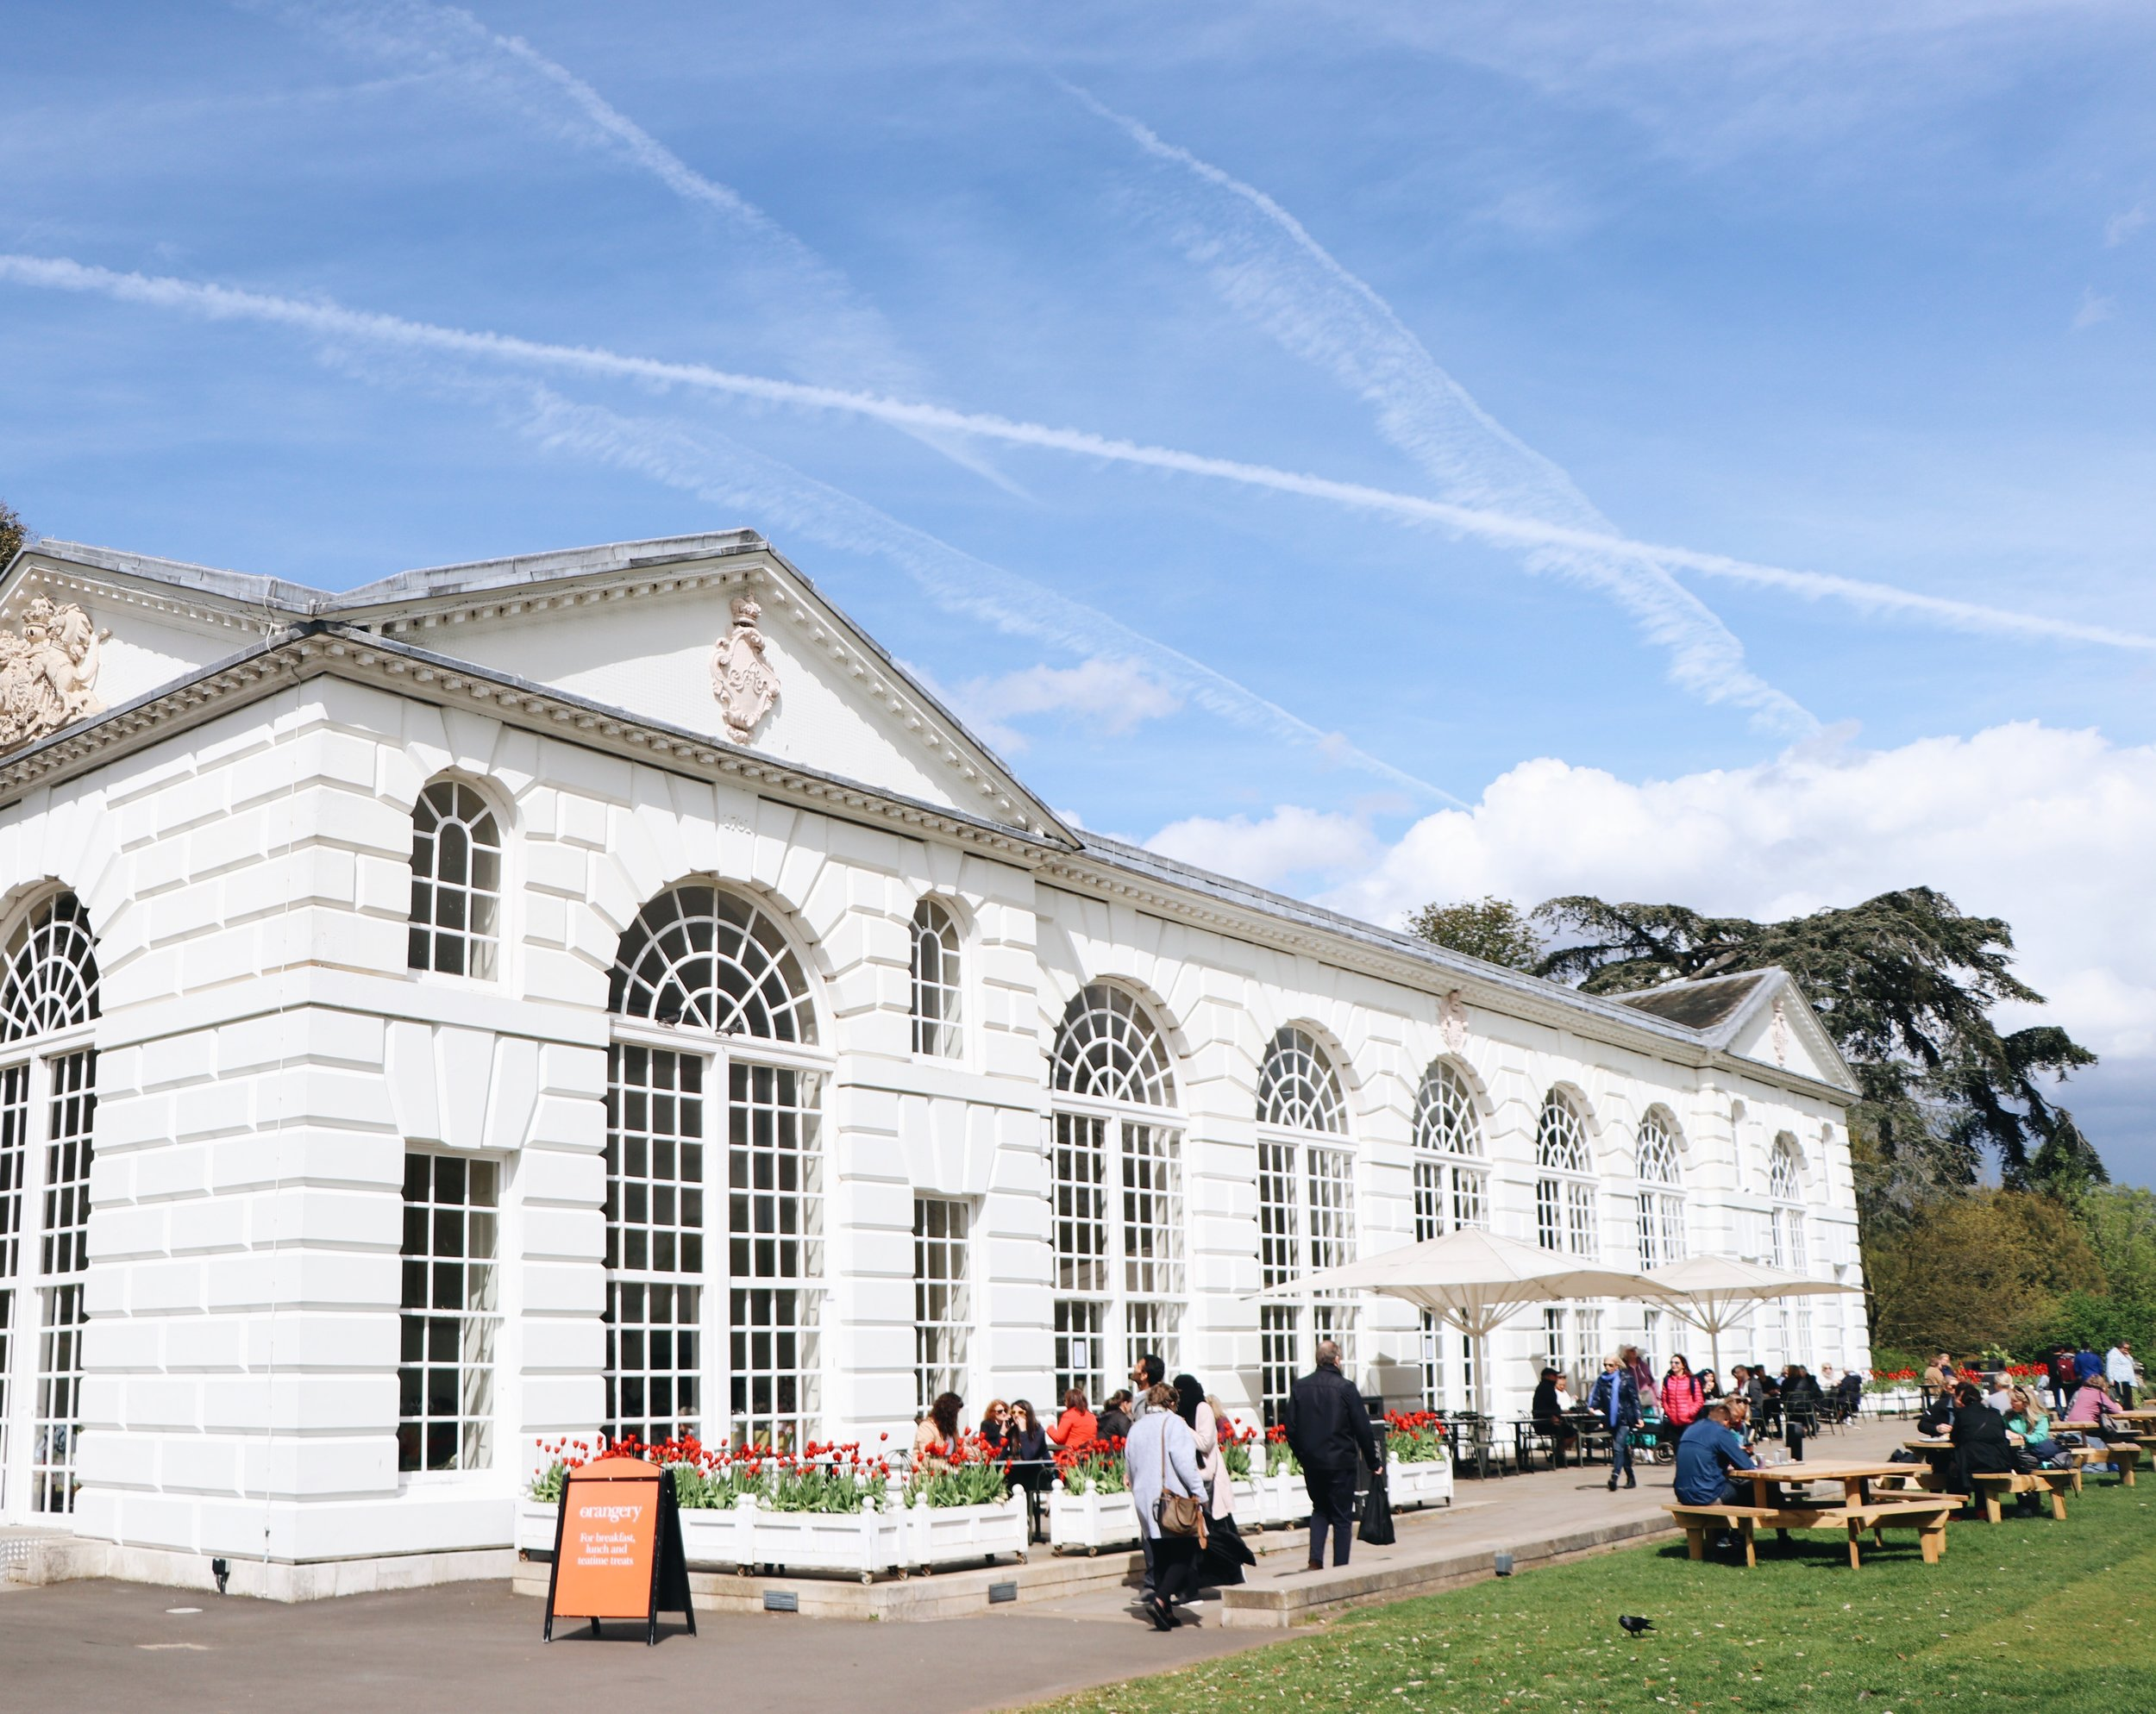 The Orangerie cafe in Kew Gardens